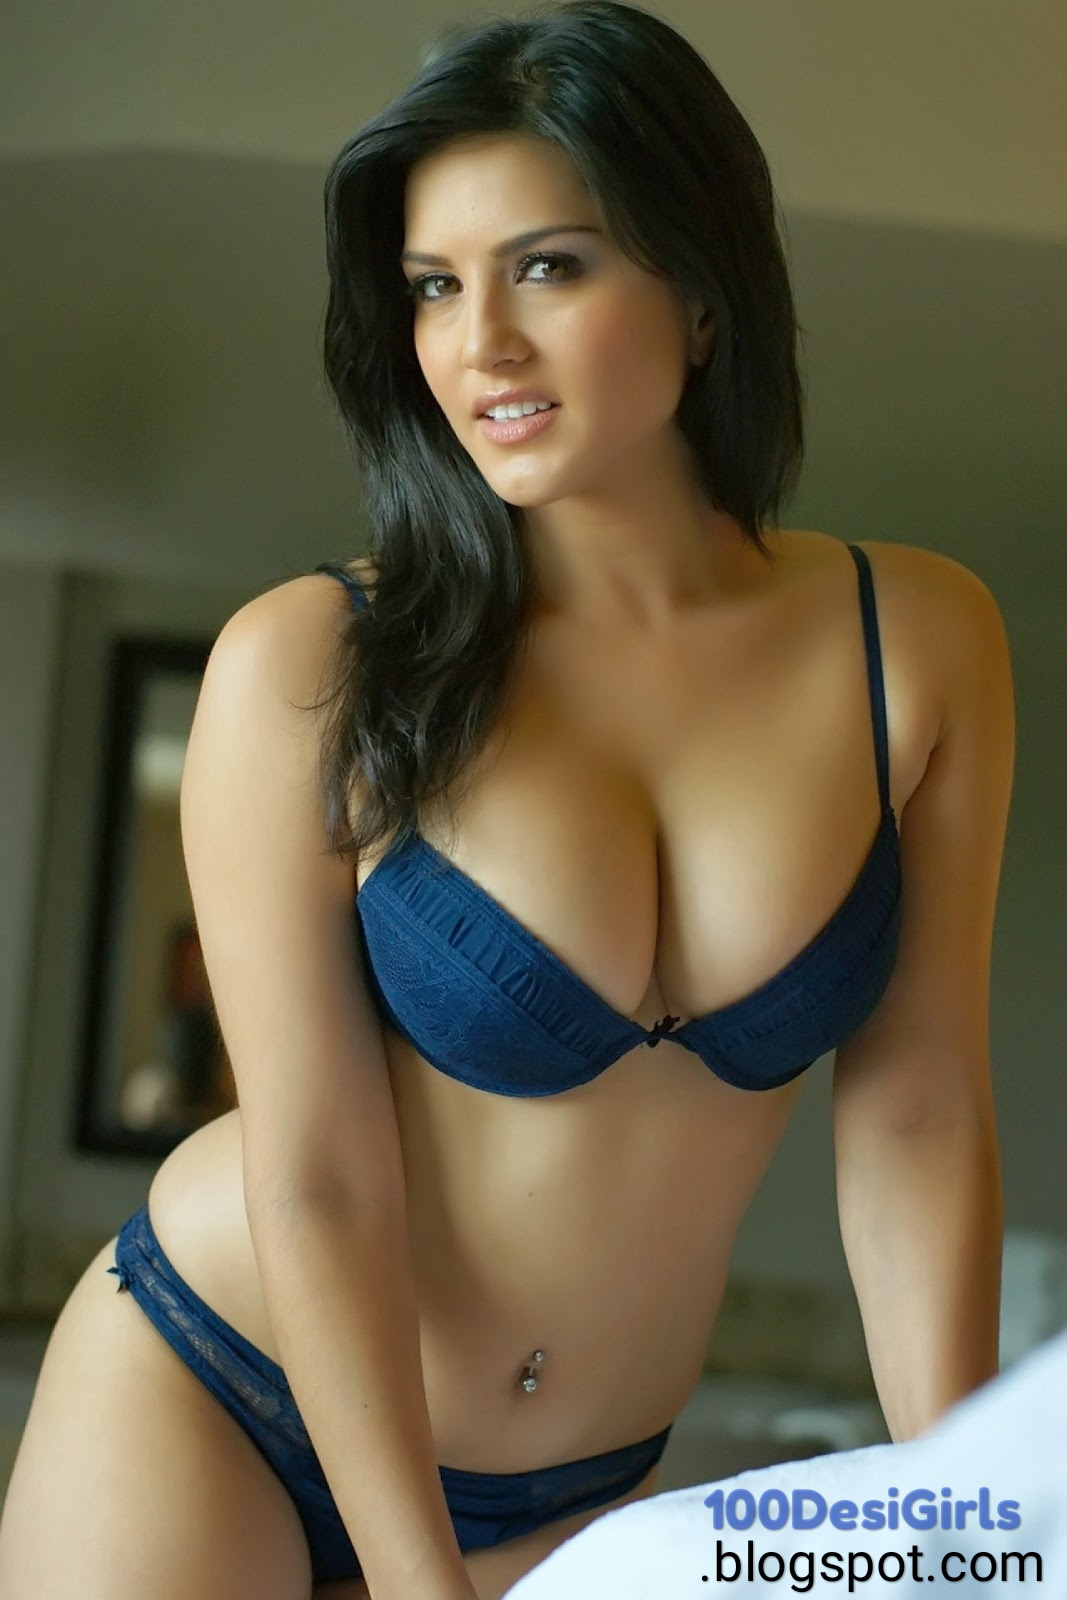 Hundreds Of Hot  Sexy Desi Girls Exclusive For Free-5191